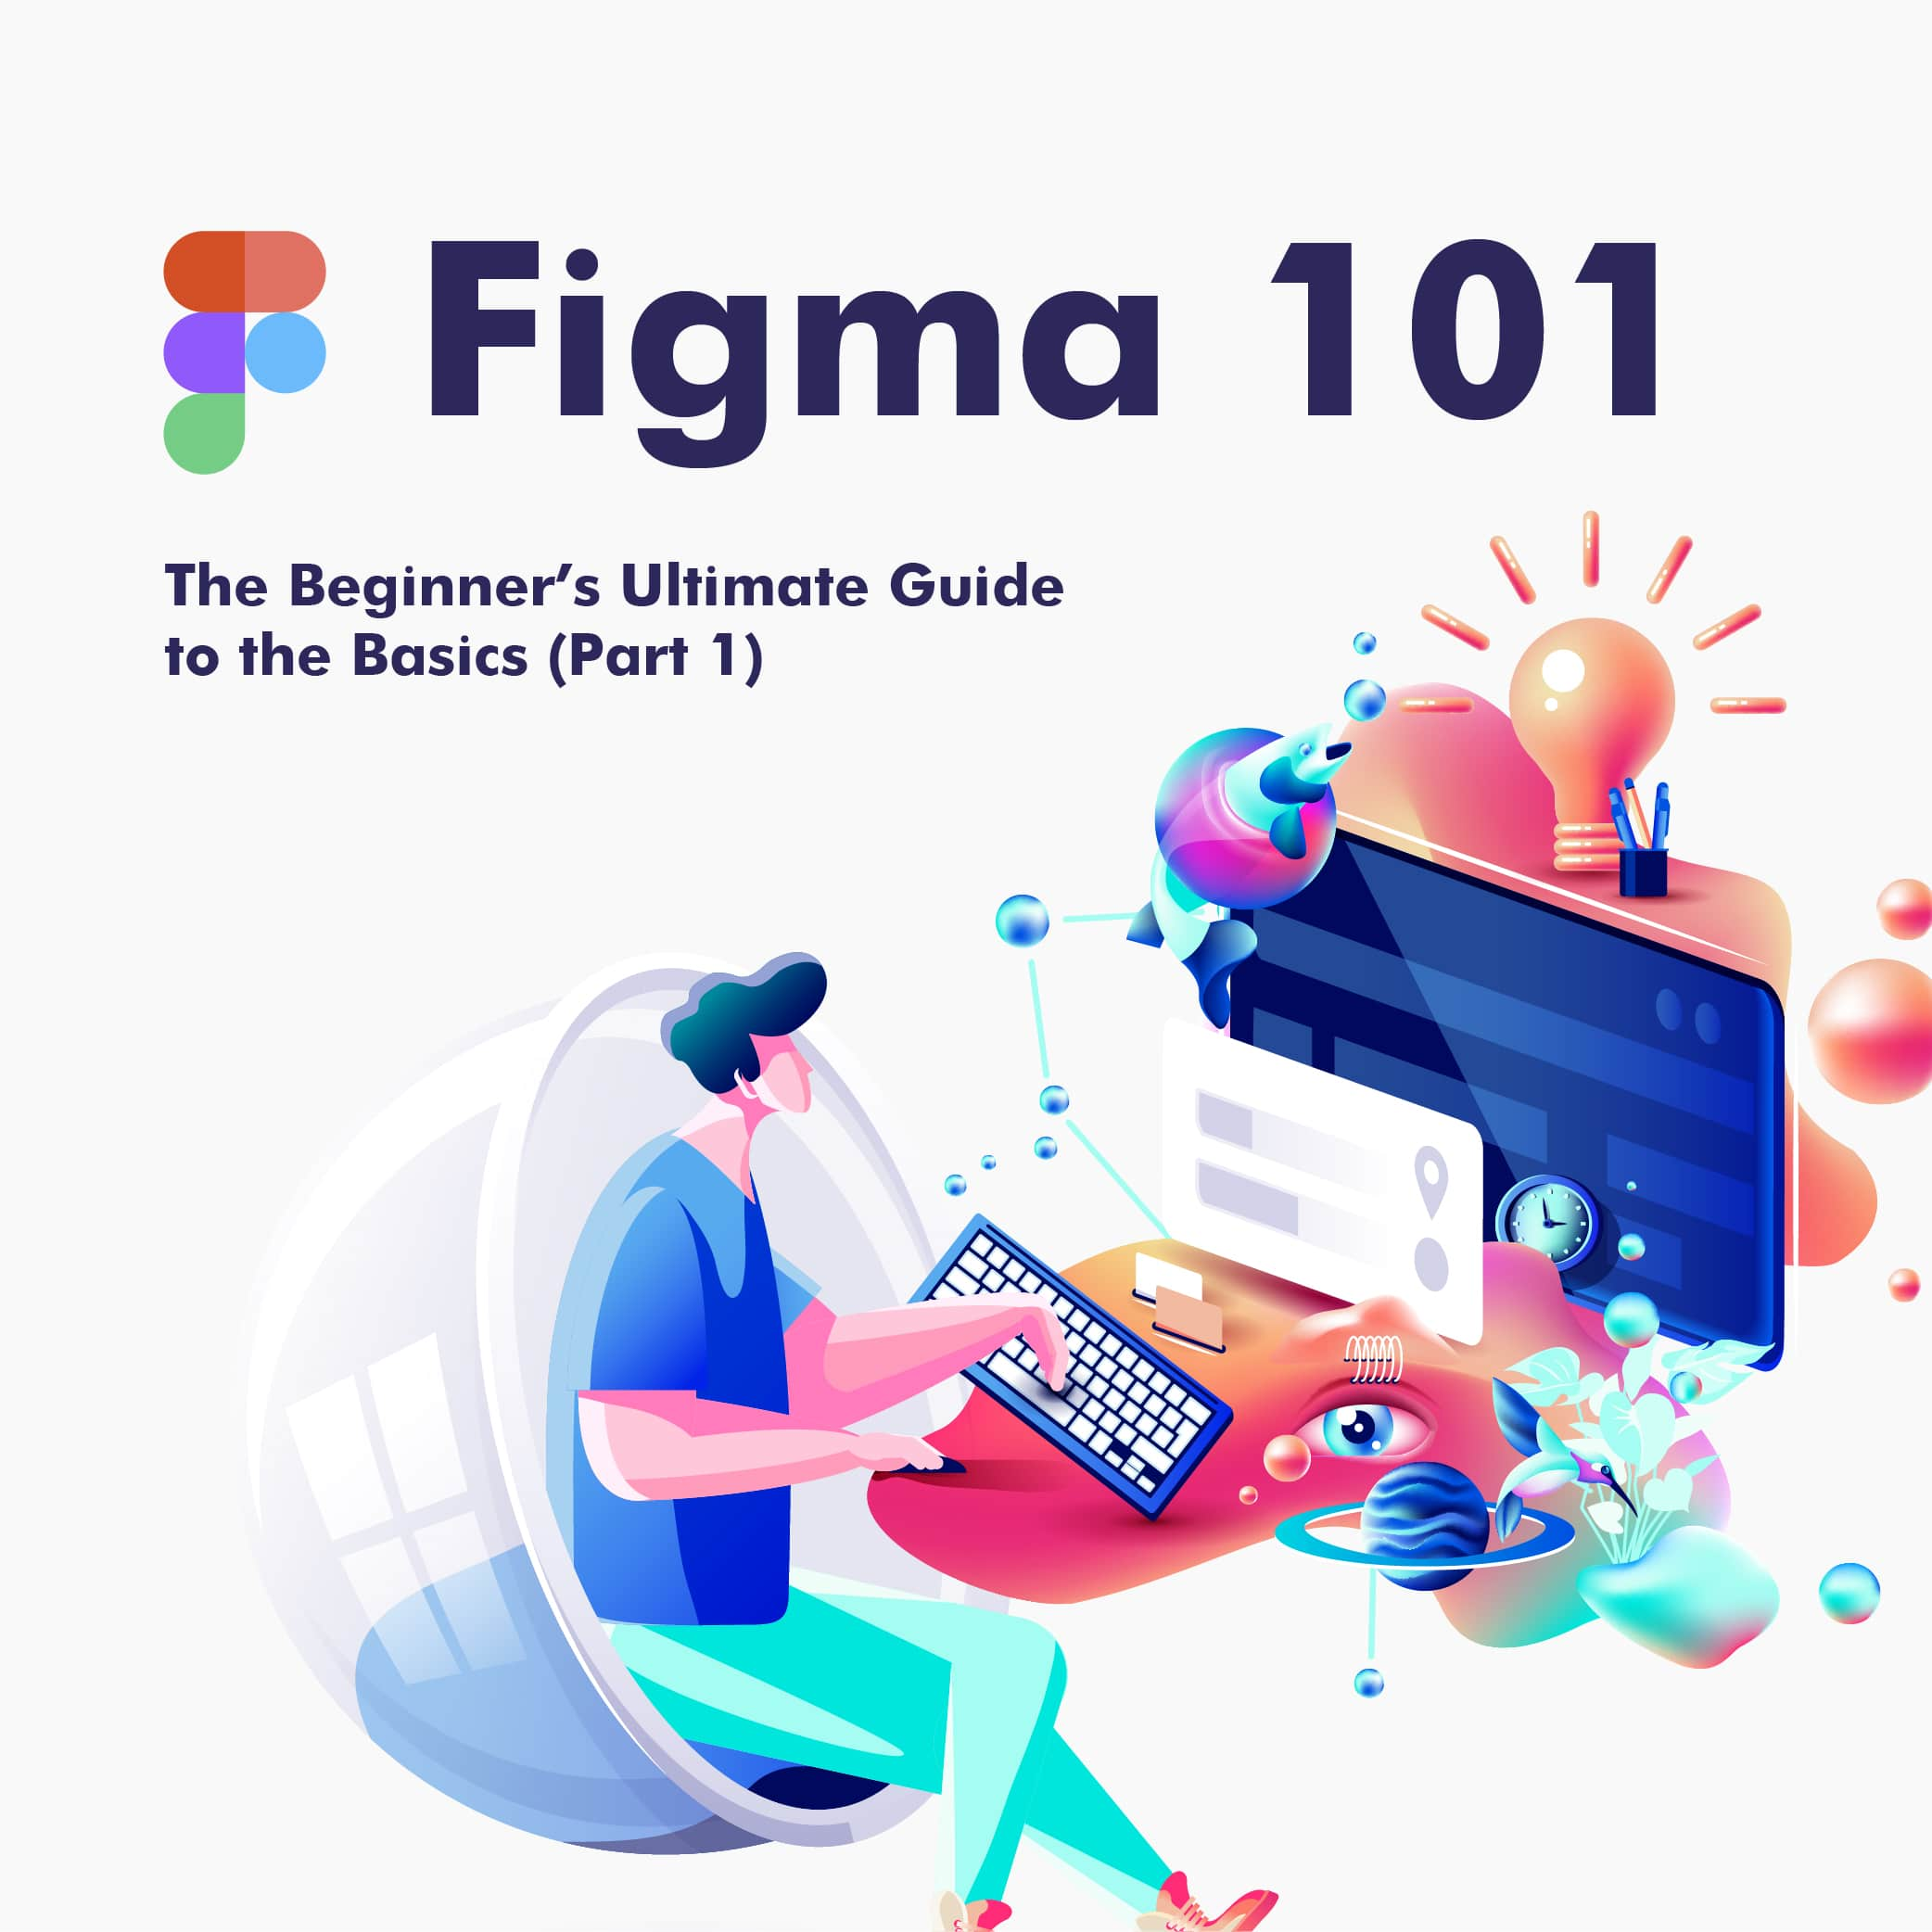 52464Figma 101 – The Beginner's Ultimate Guide to the Basics (Part 1)